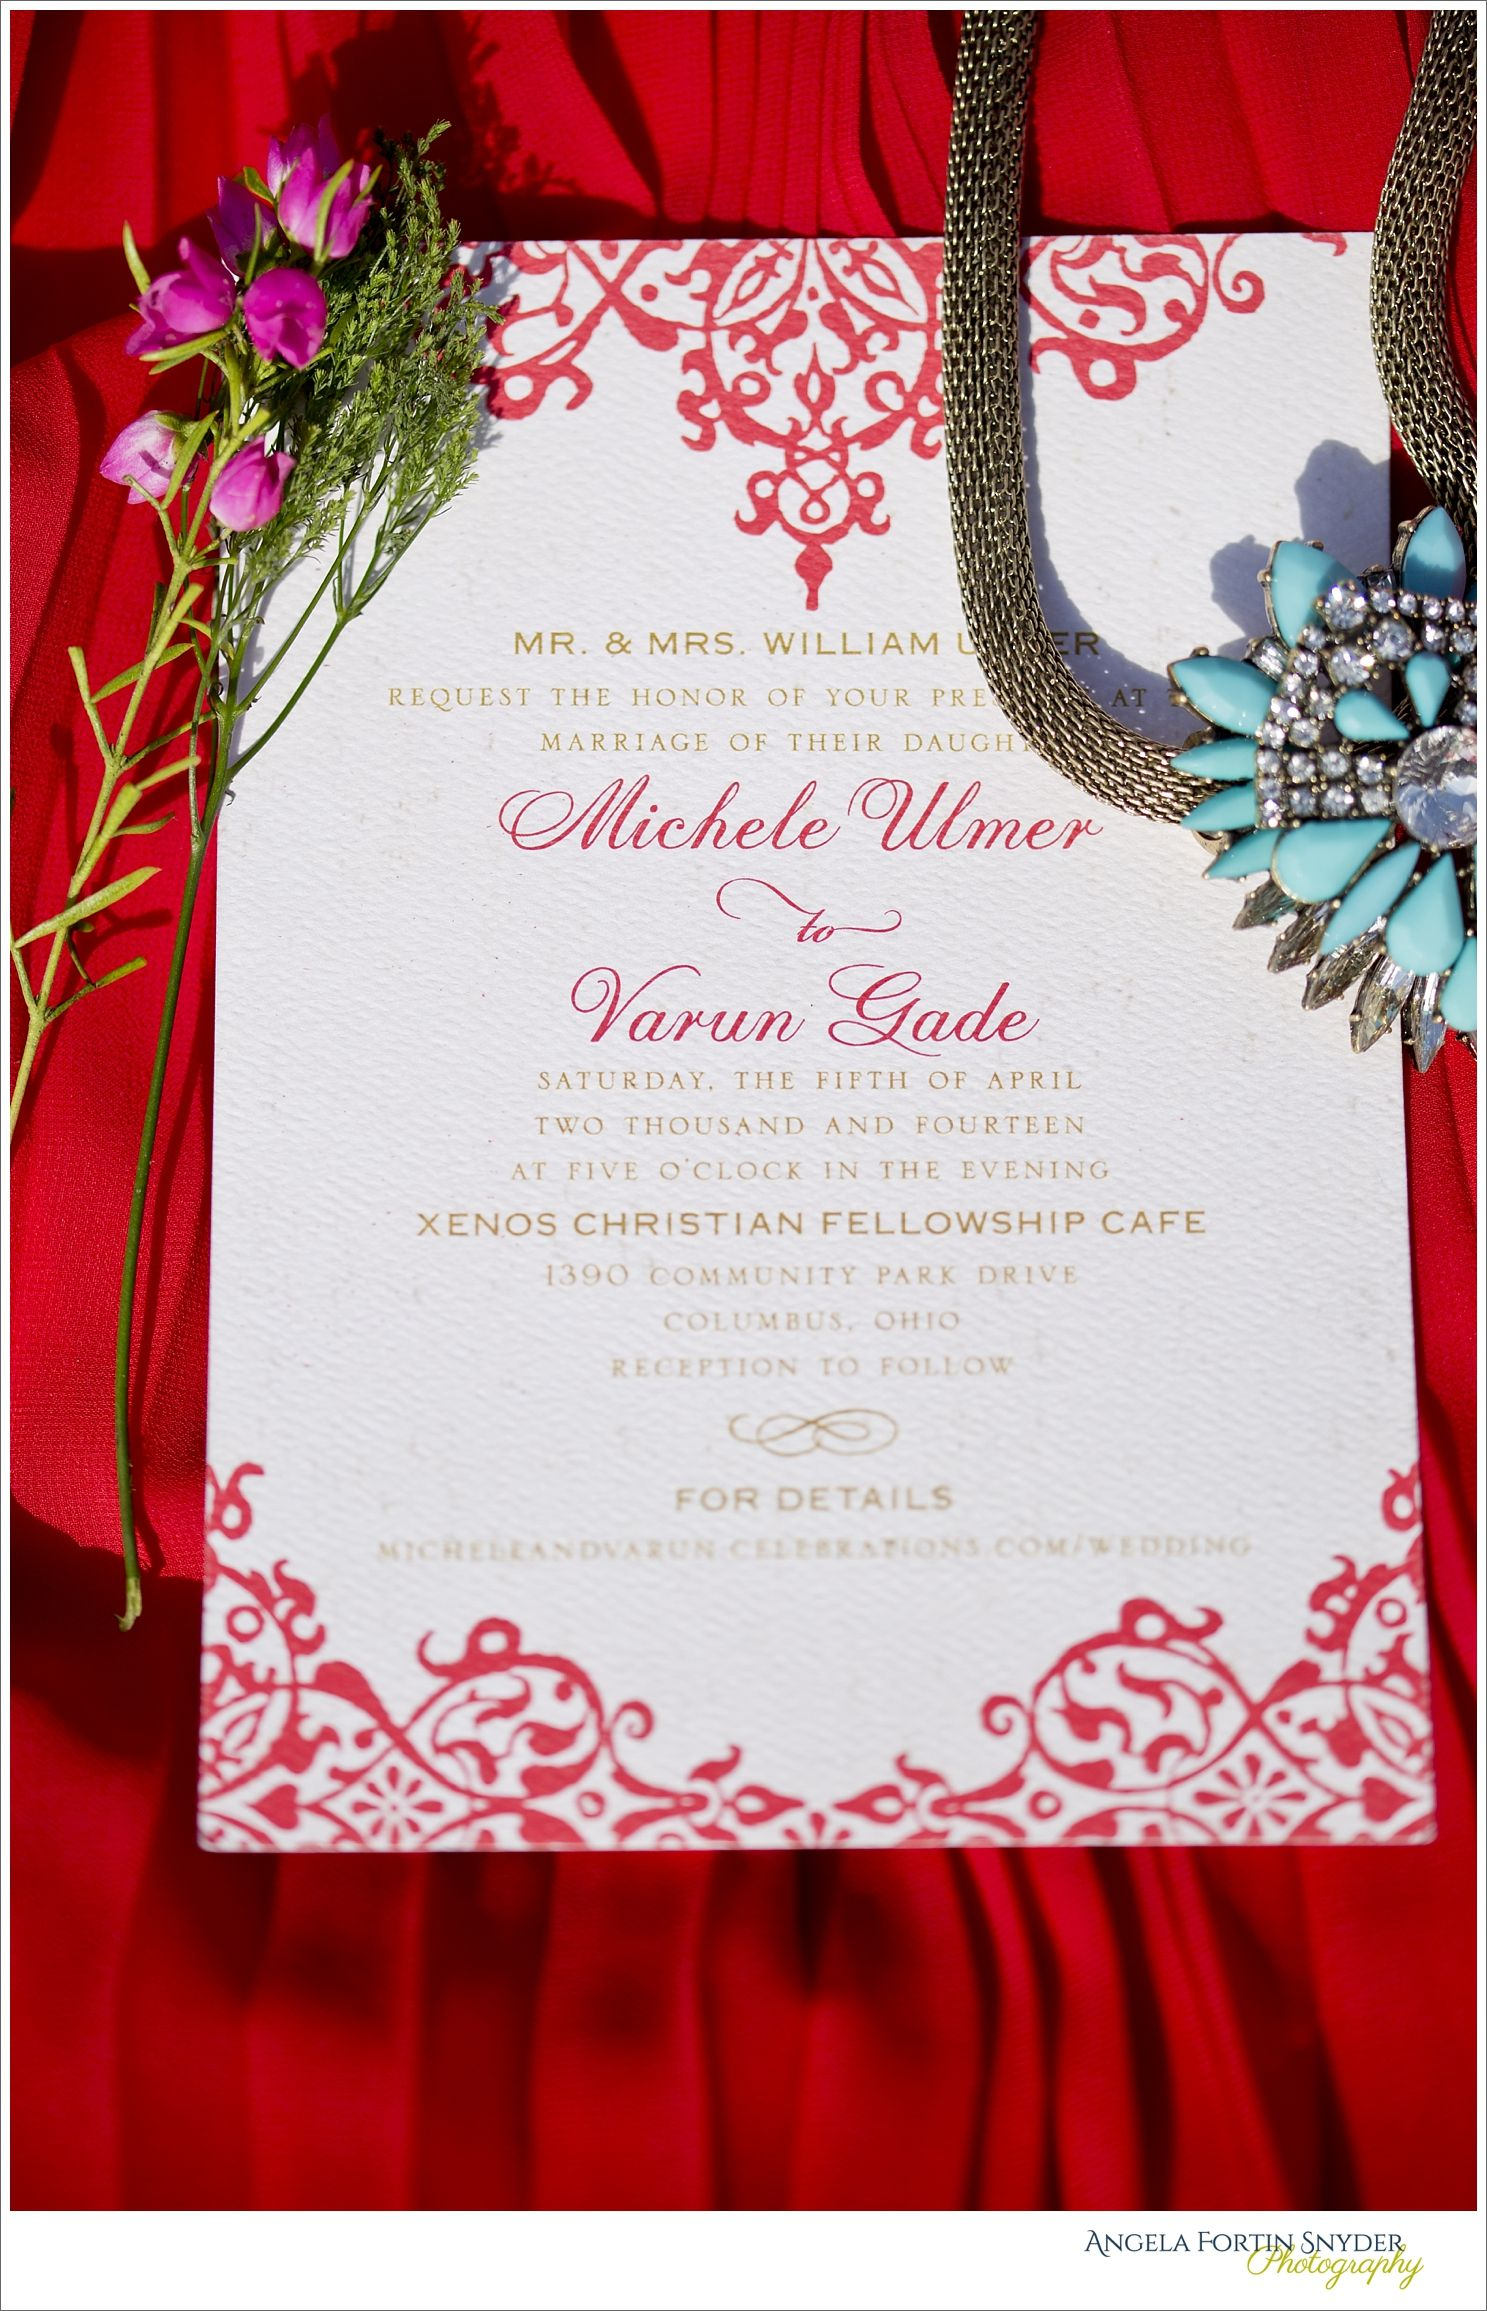 Amazing Indian Themed Wedding Invitations Frieze - The Wedding Ideas ...